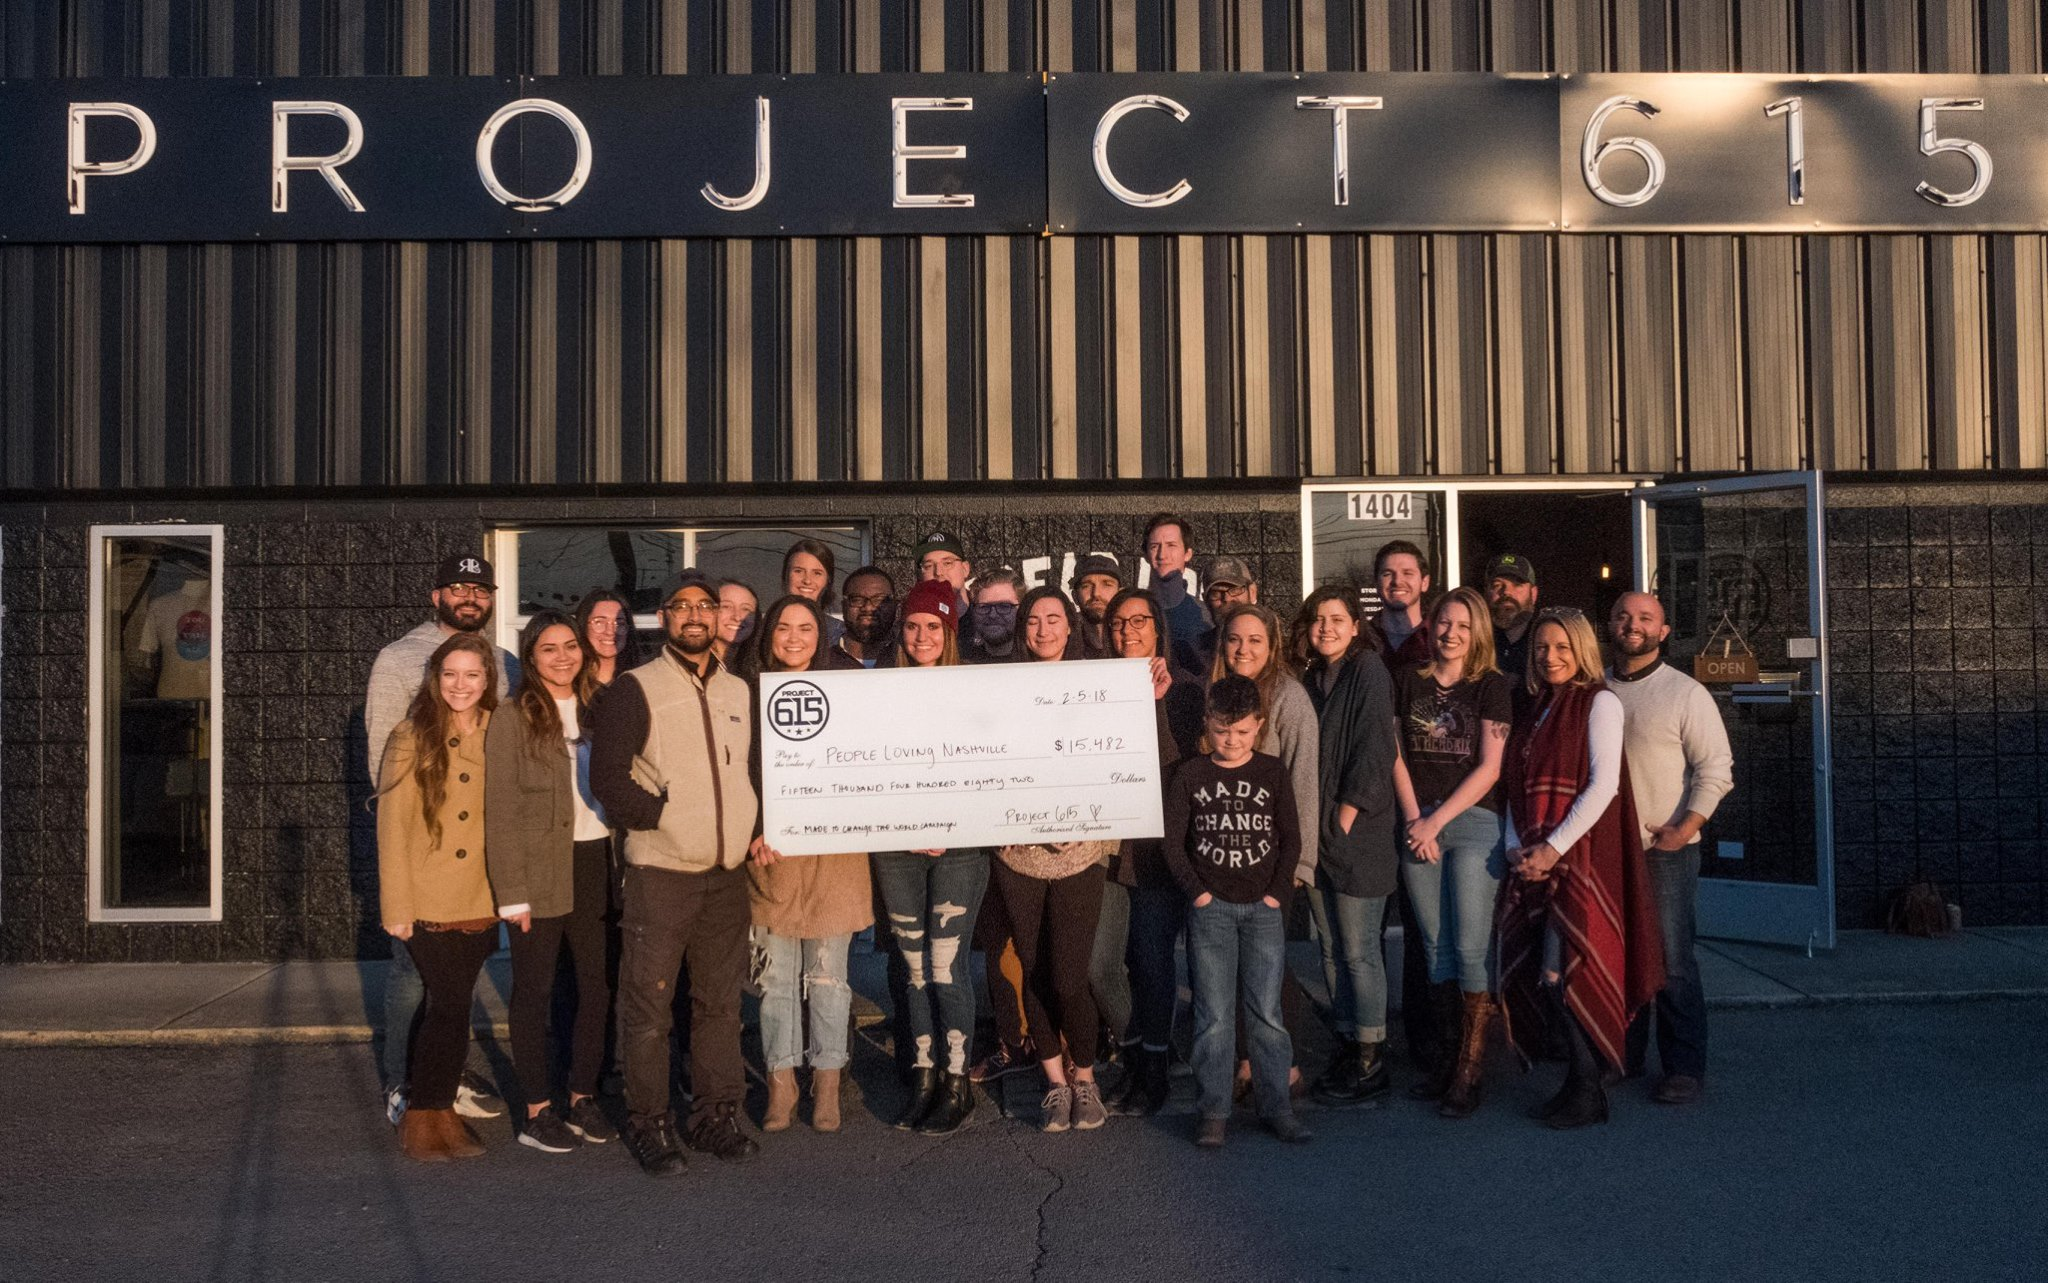 Over $15,000 was raised for People Loving Nashville to provide meals for the homeless community through our Made to Change the World tees.